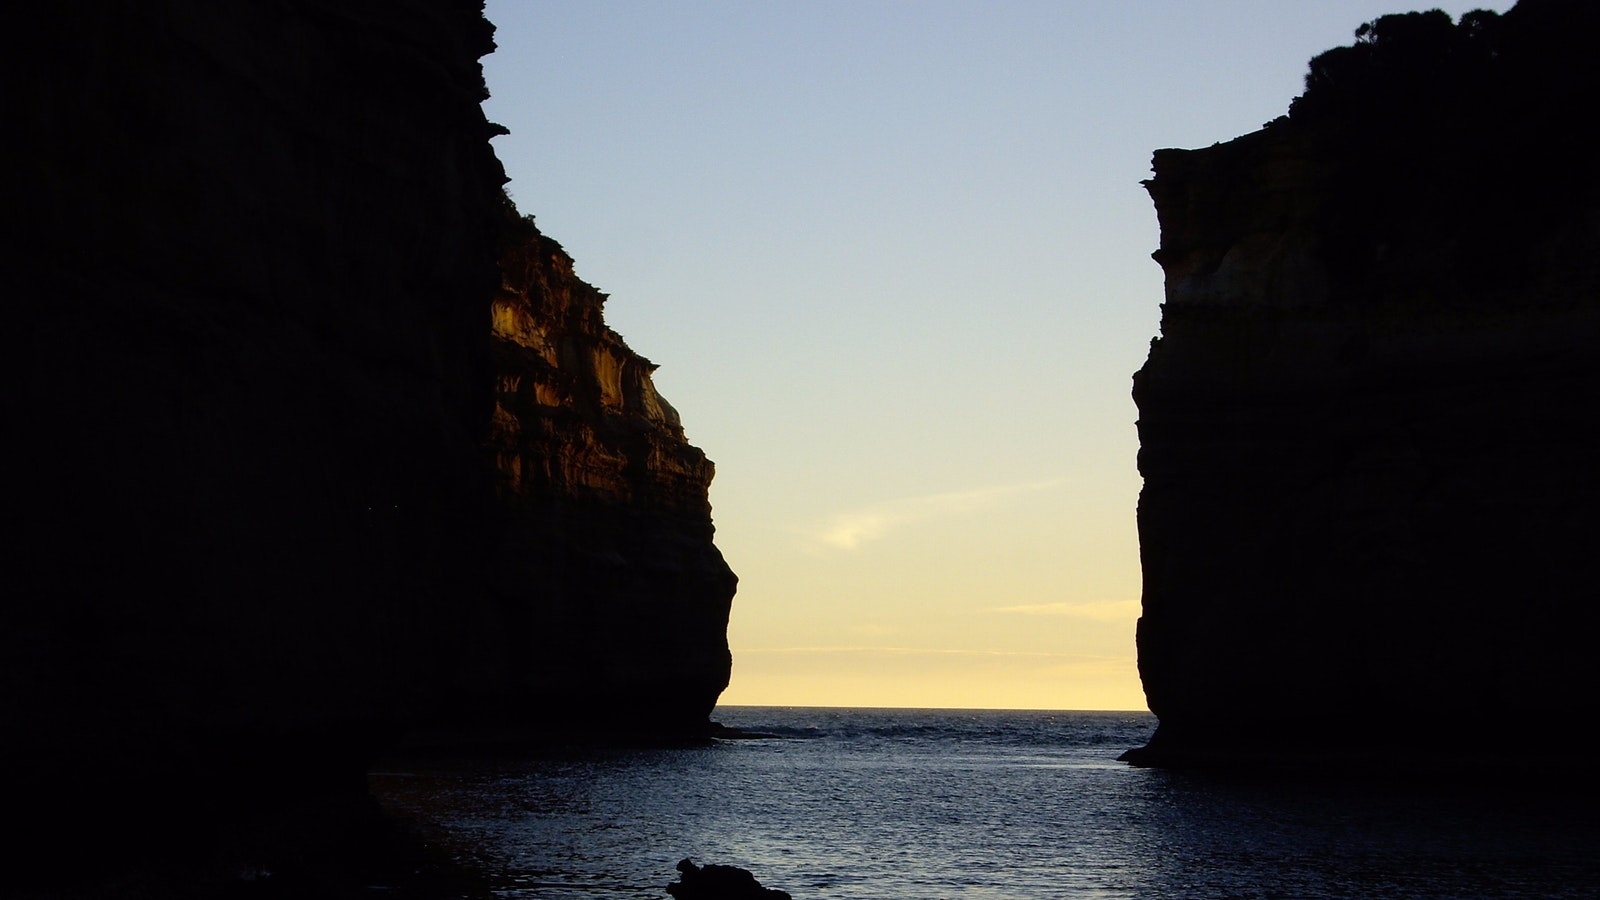 The Gorge on sunset